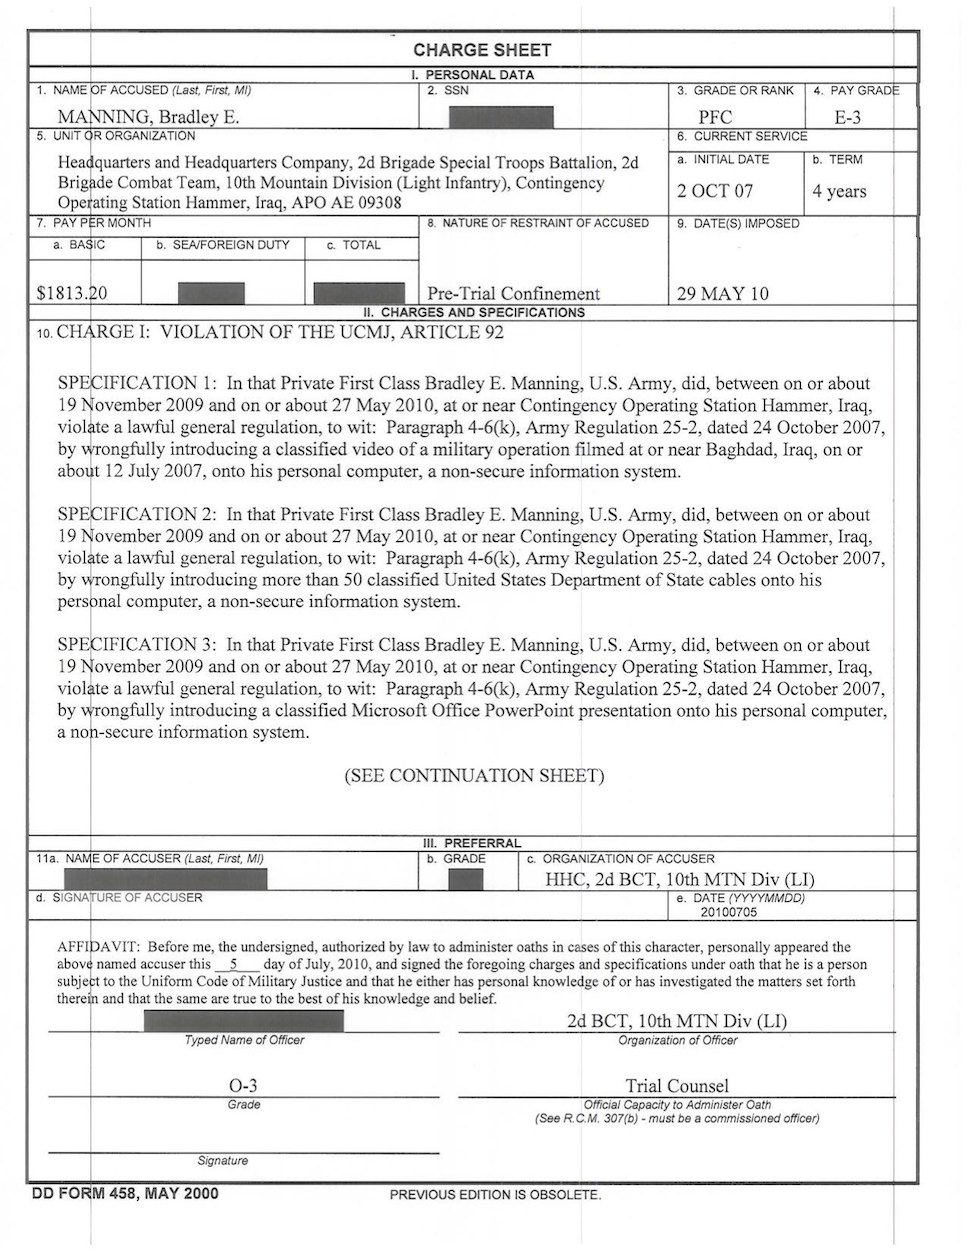 Manning charge sheet, page 1